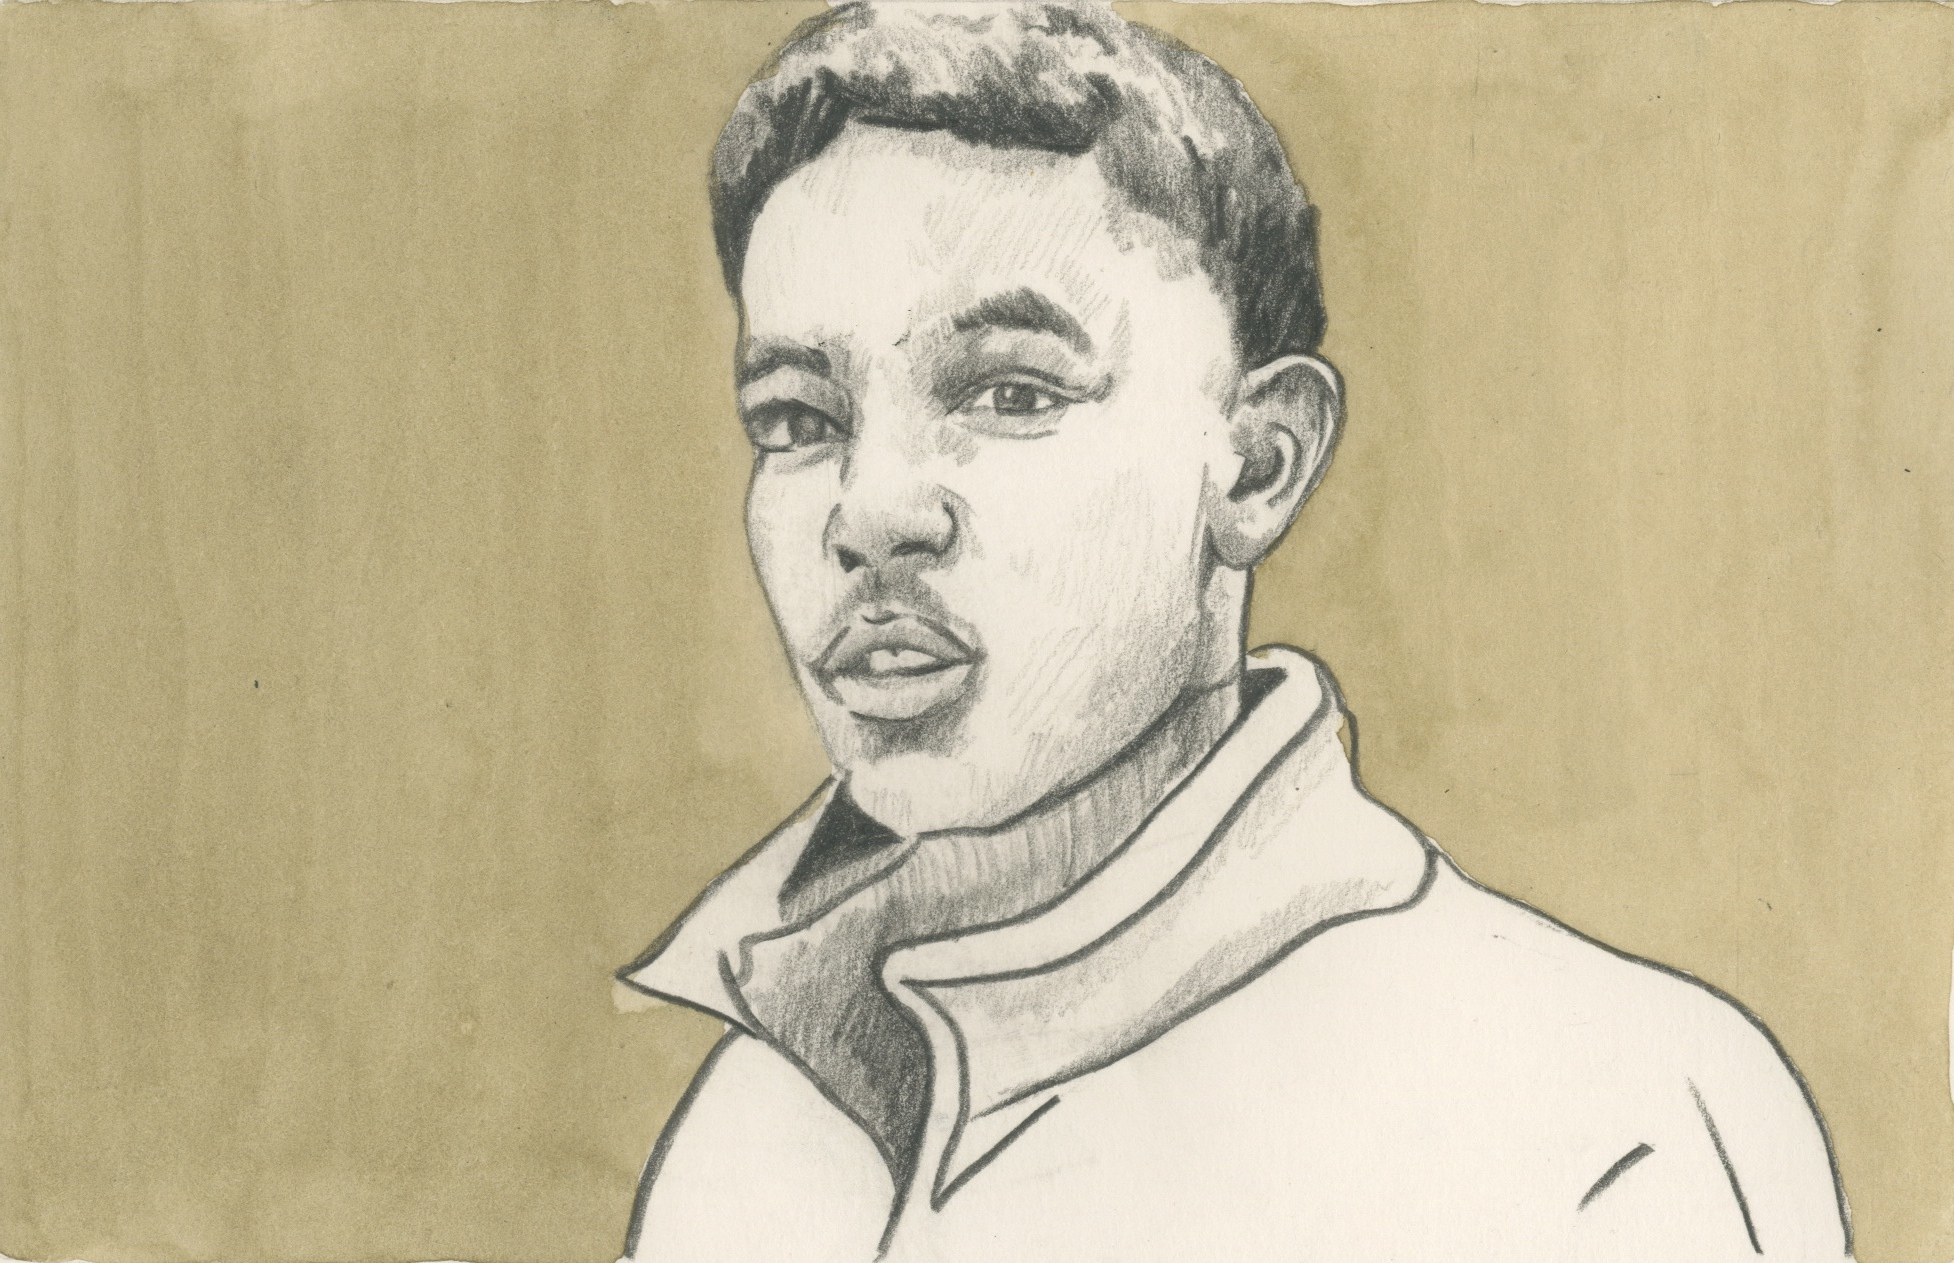 16/01/15 Khaled Idris Bahray, a 20-year-old refugee from Eritrea, murdered on a Dresden housing estate at a time when 25,000 Germans were demonstrating in support of anti-immigration movement Pegida